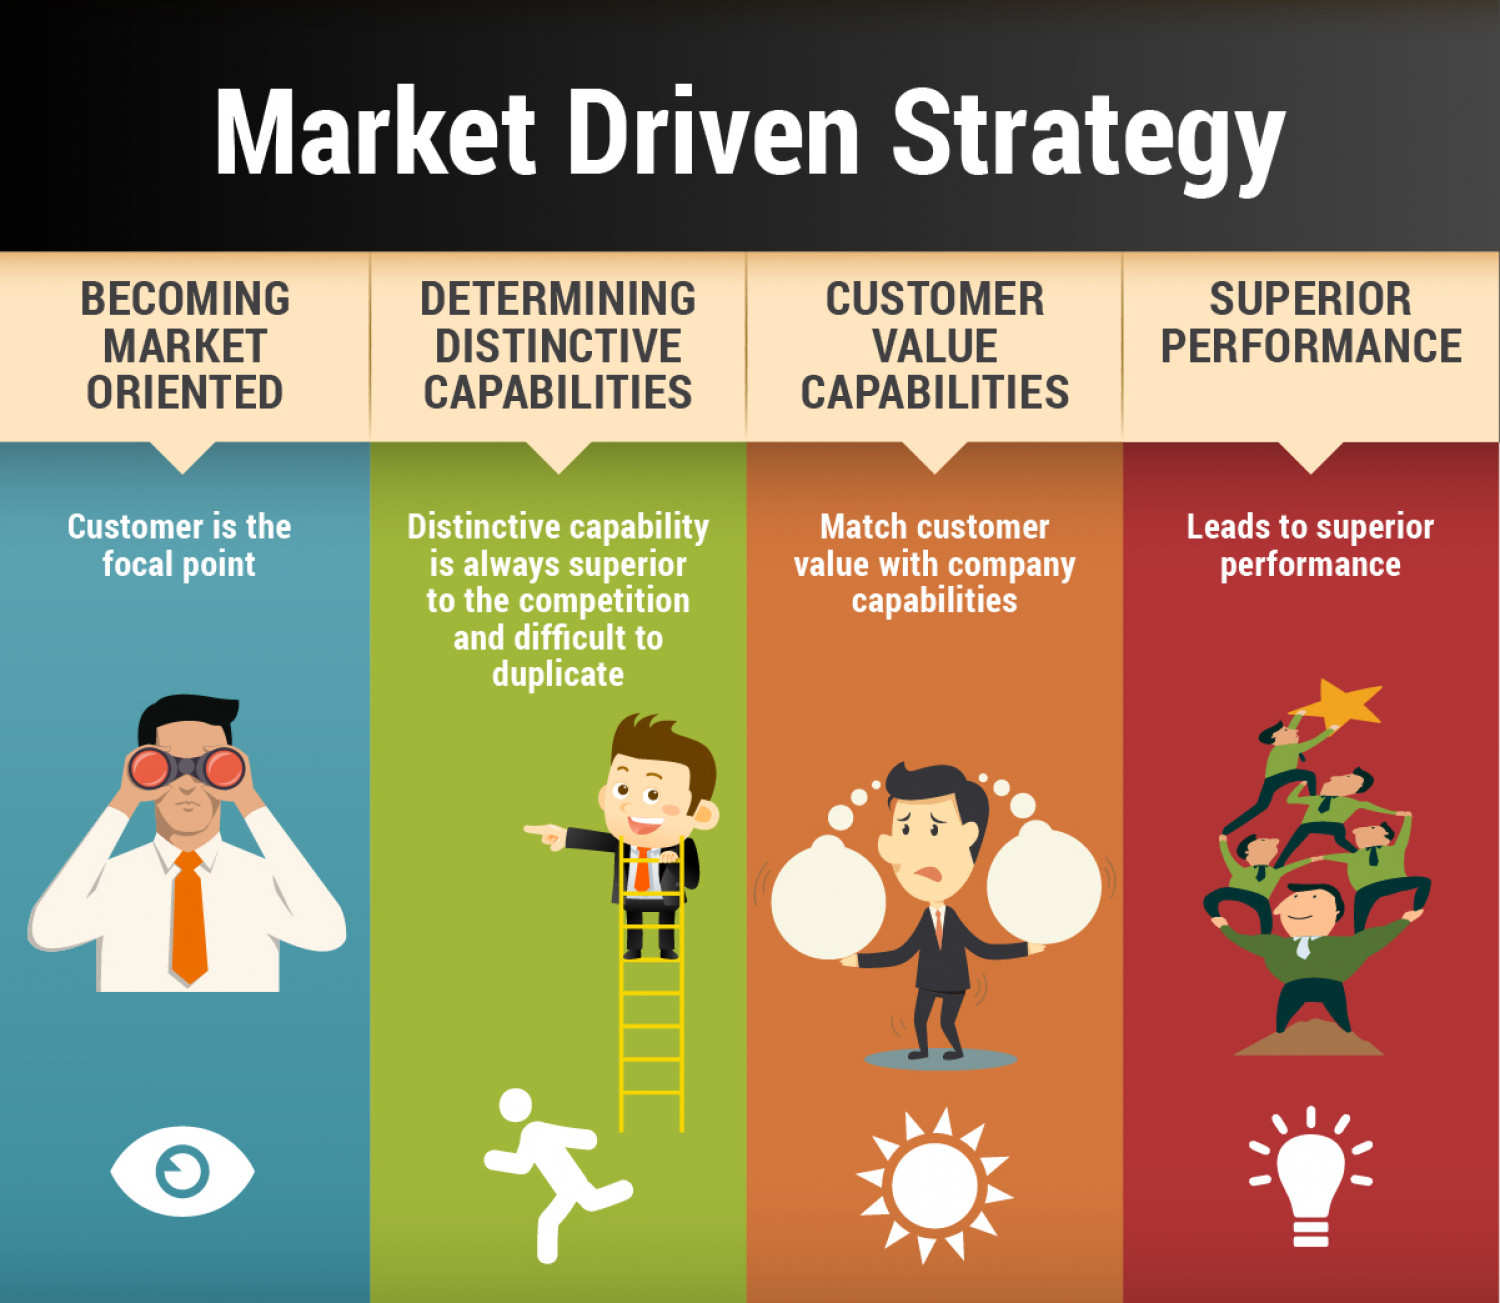 Market Driven Strategy Infographic